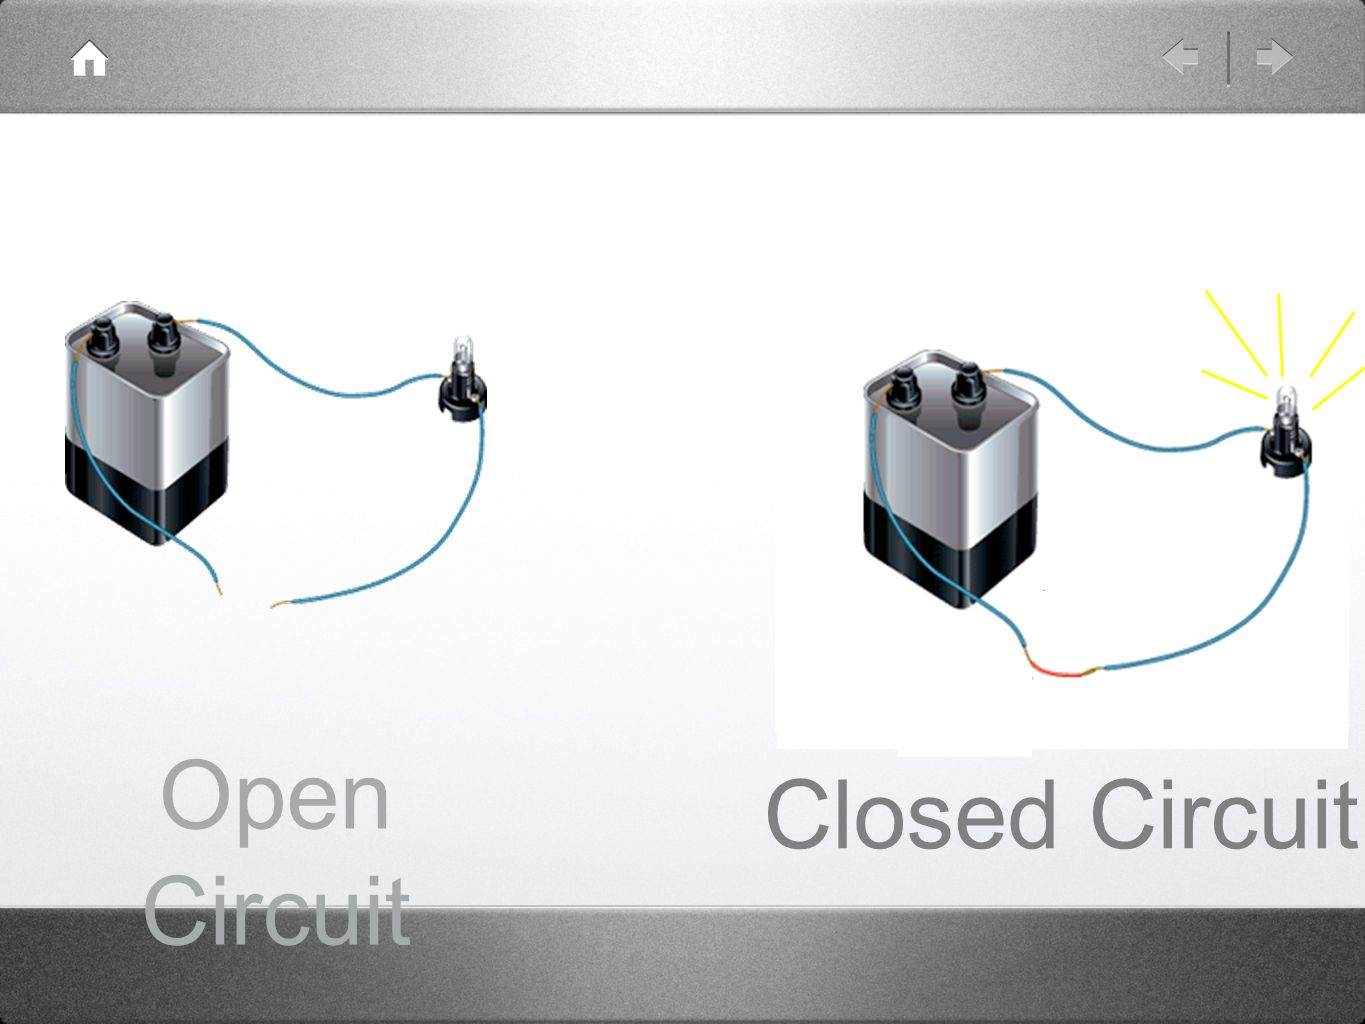 Open Circuit Closed Circuit